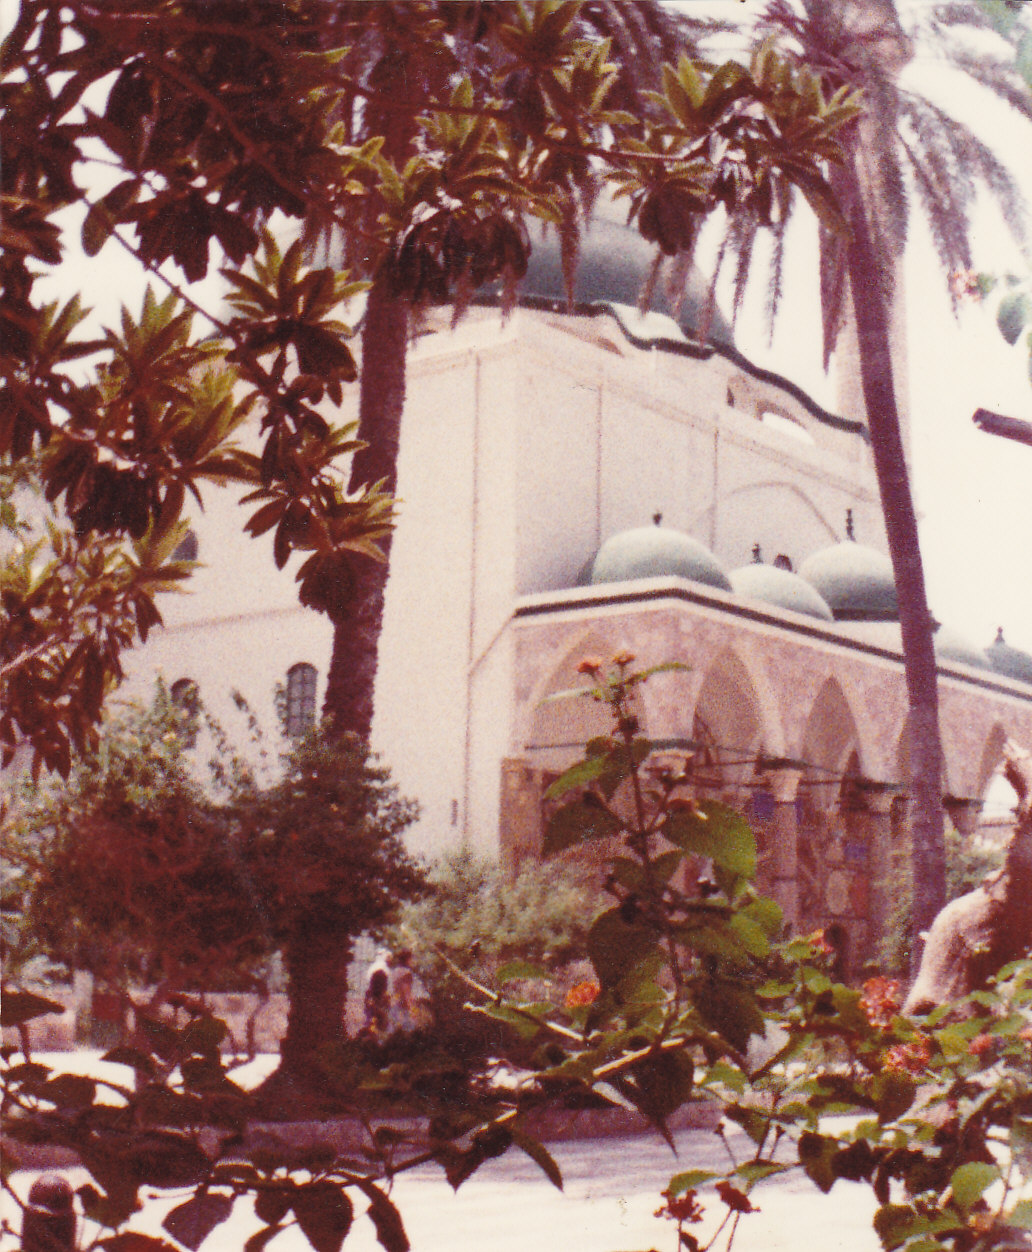 Acre - عكا :   Al-Jazzar mosque from its courtyard on Monday 1/8/1983